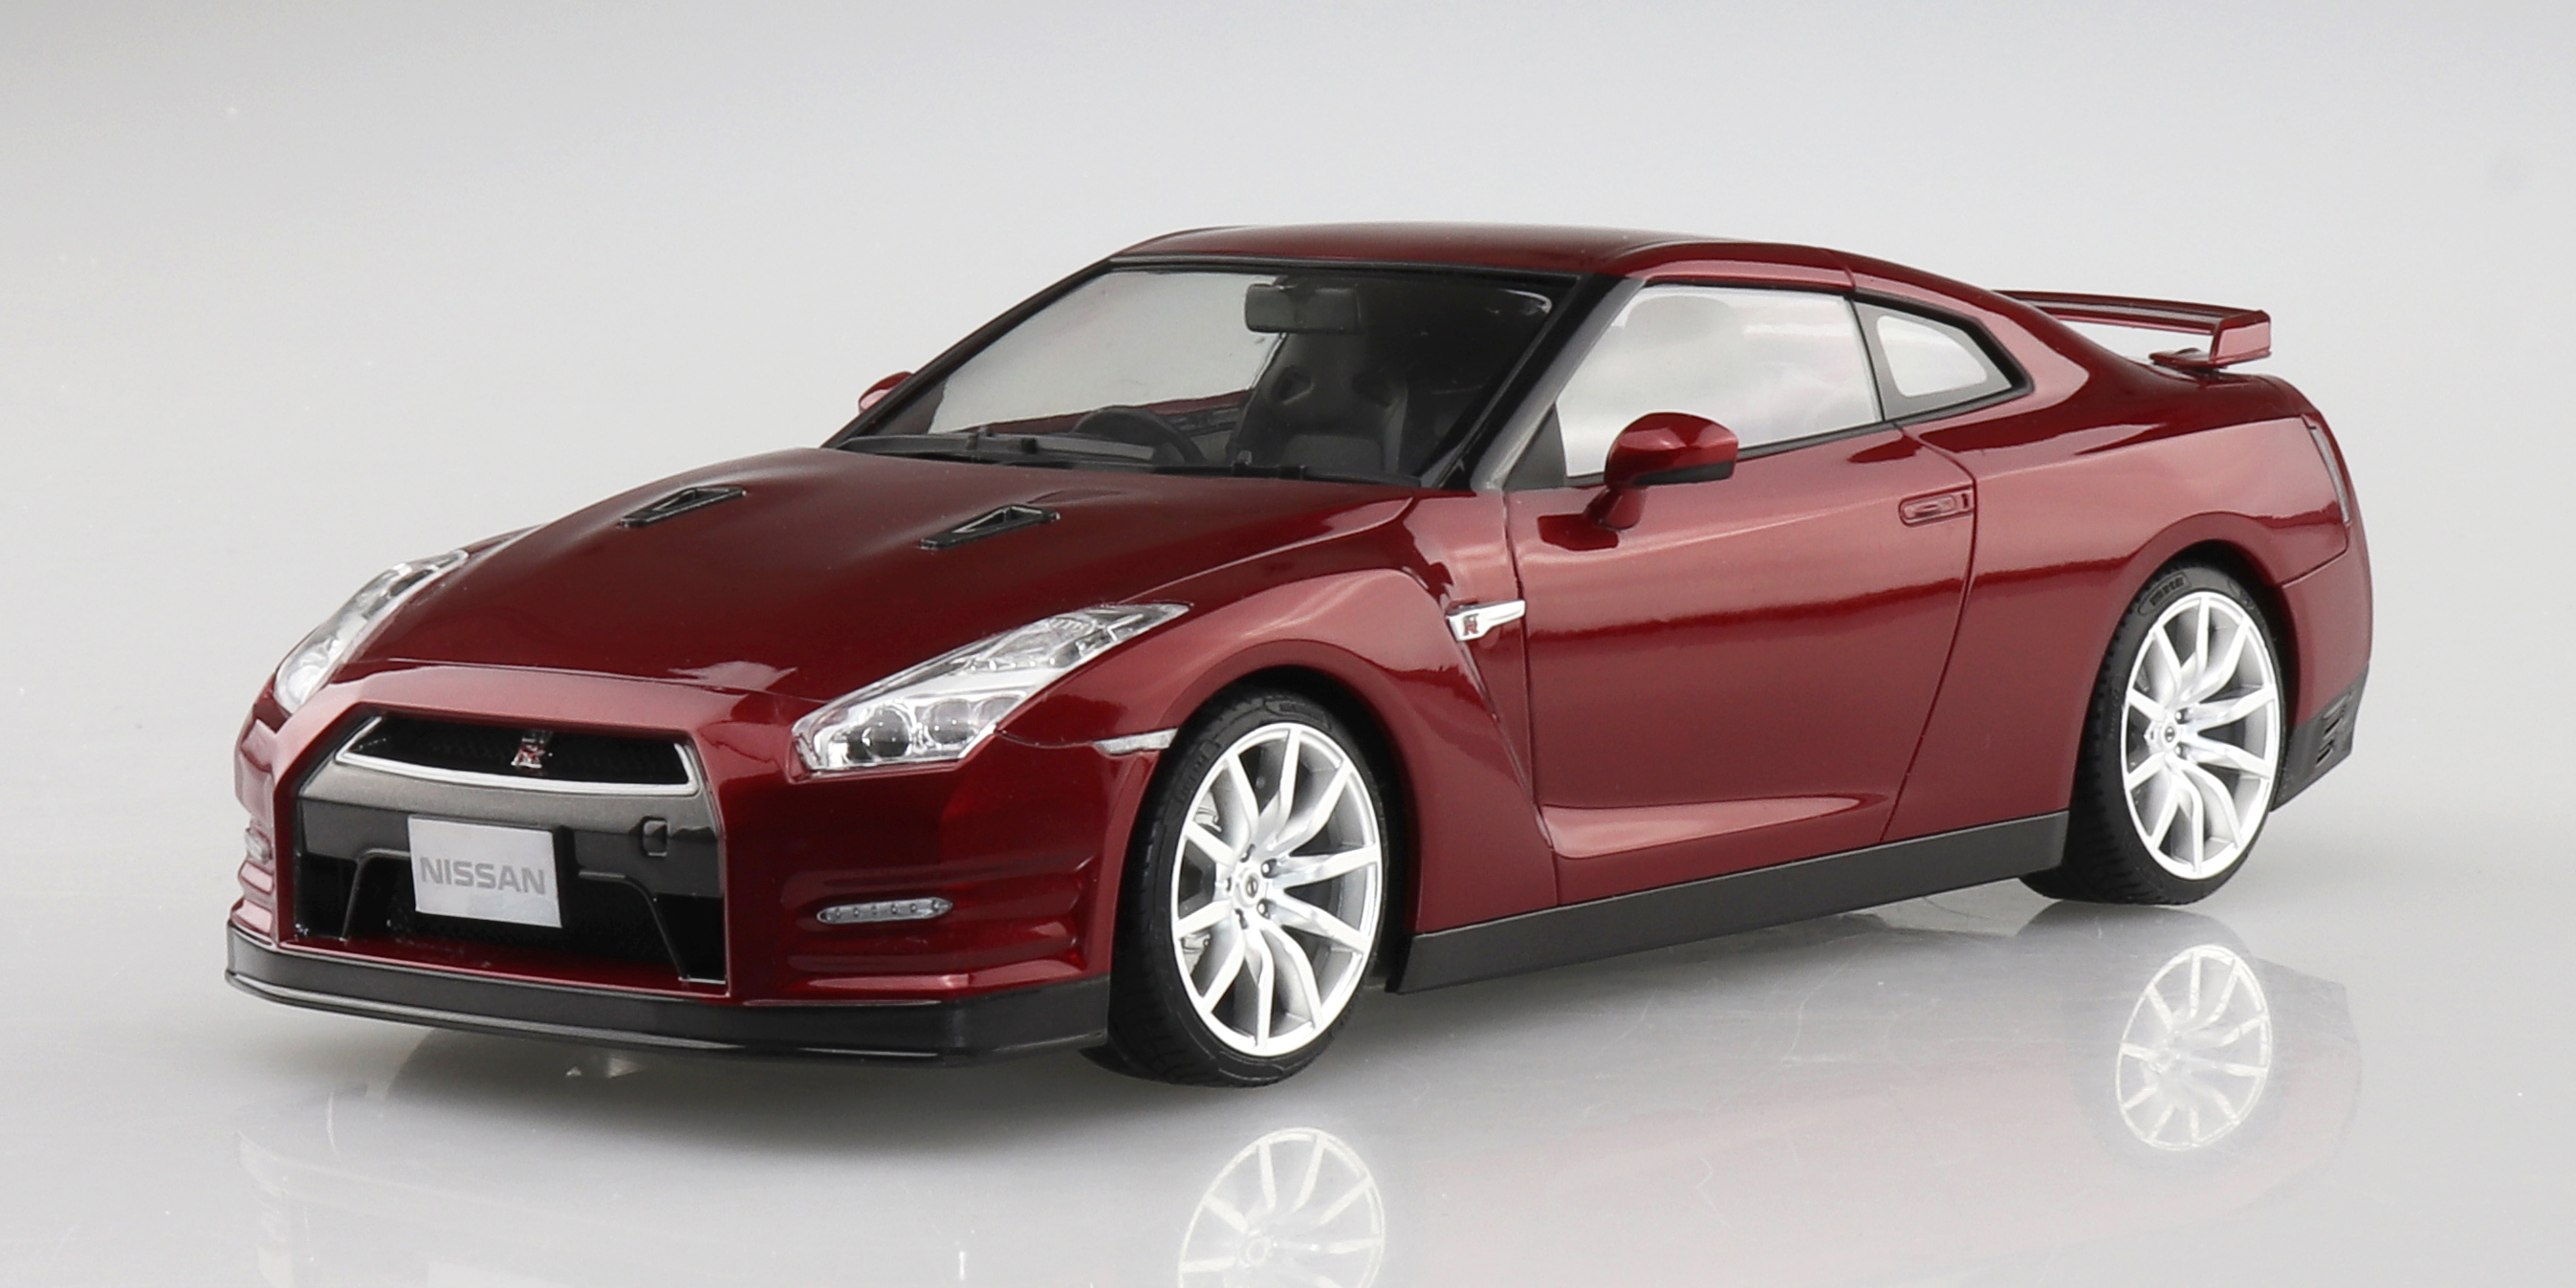 Aoshima 1/24 NISSAN R35 GT-R '14 Gold flake Red Pearl